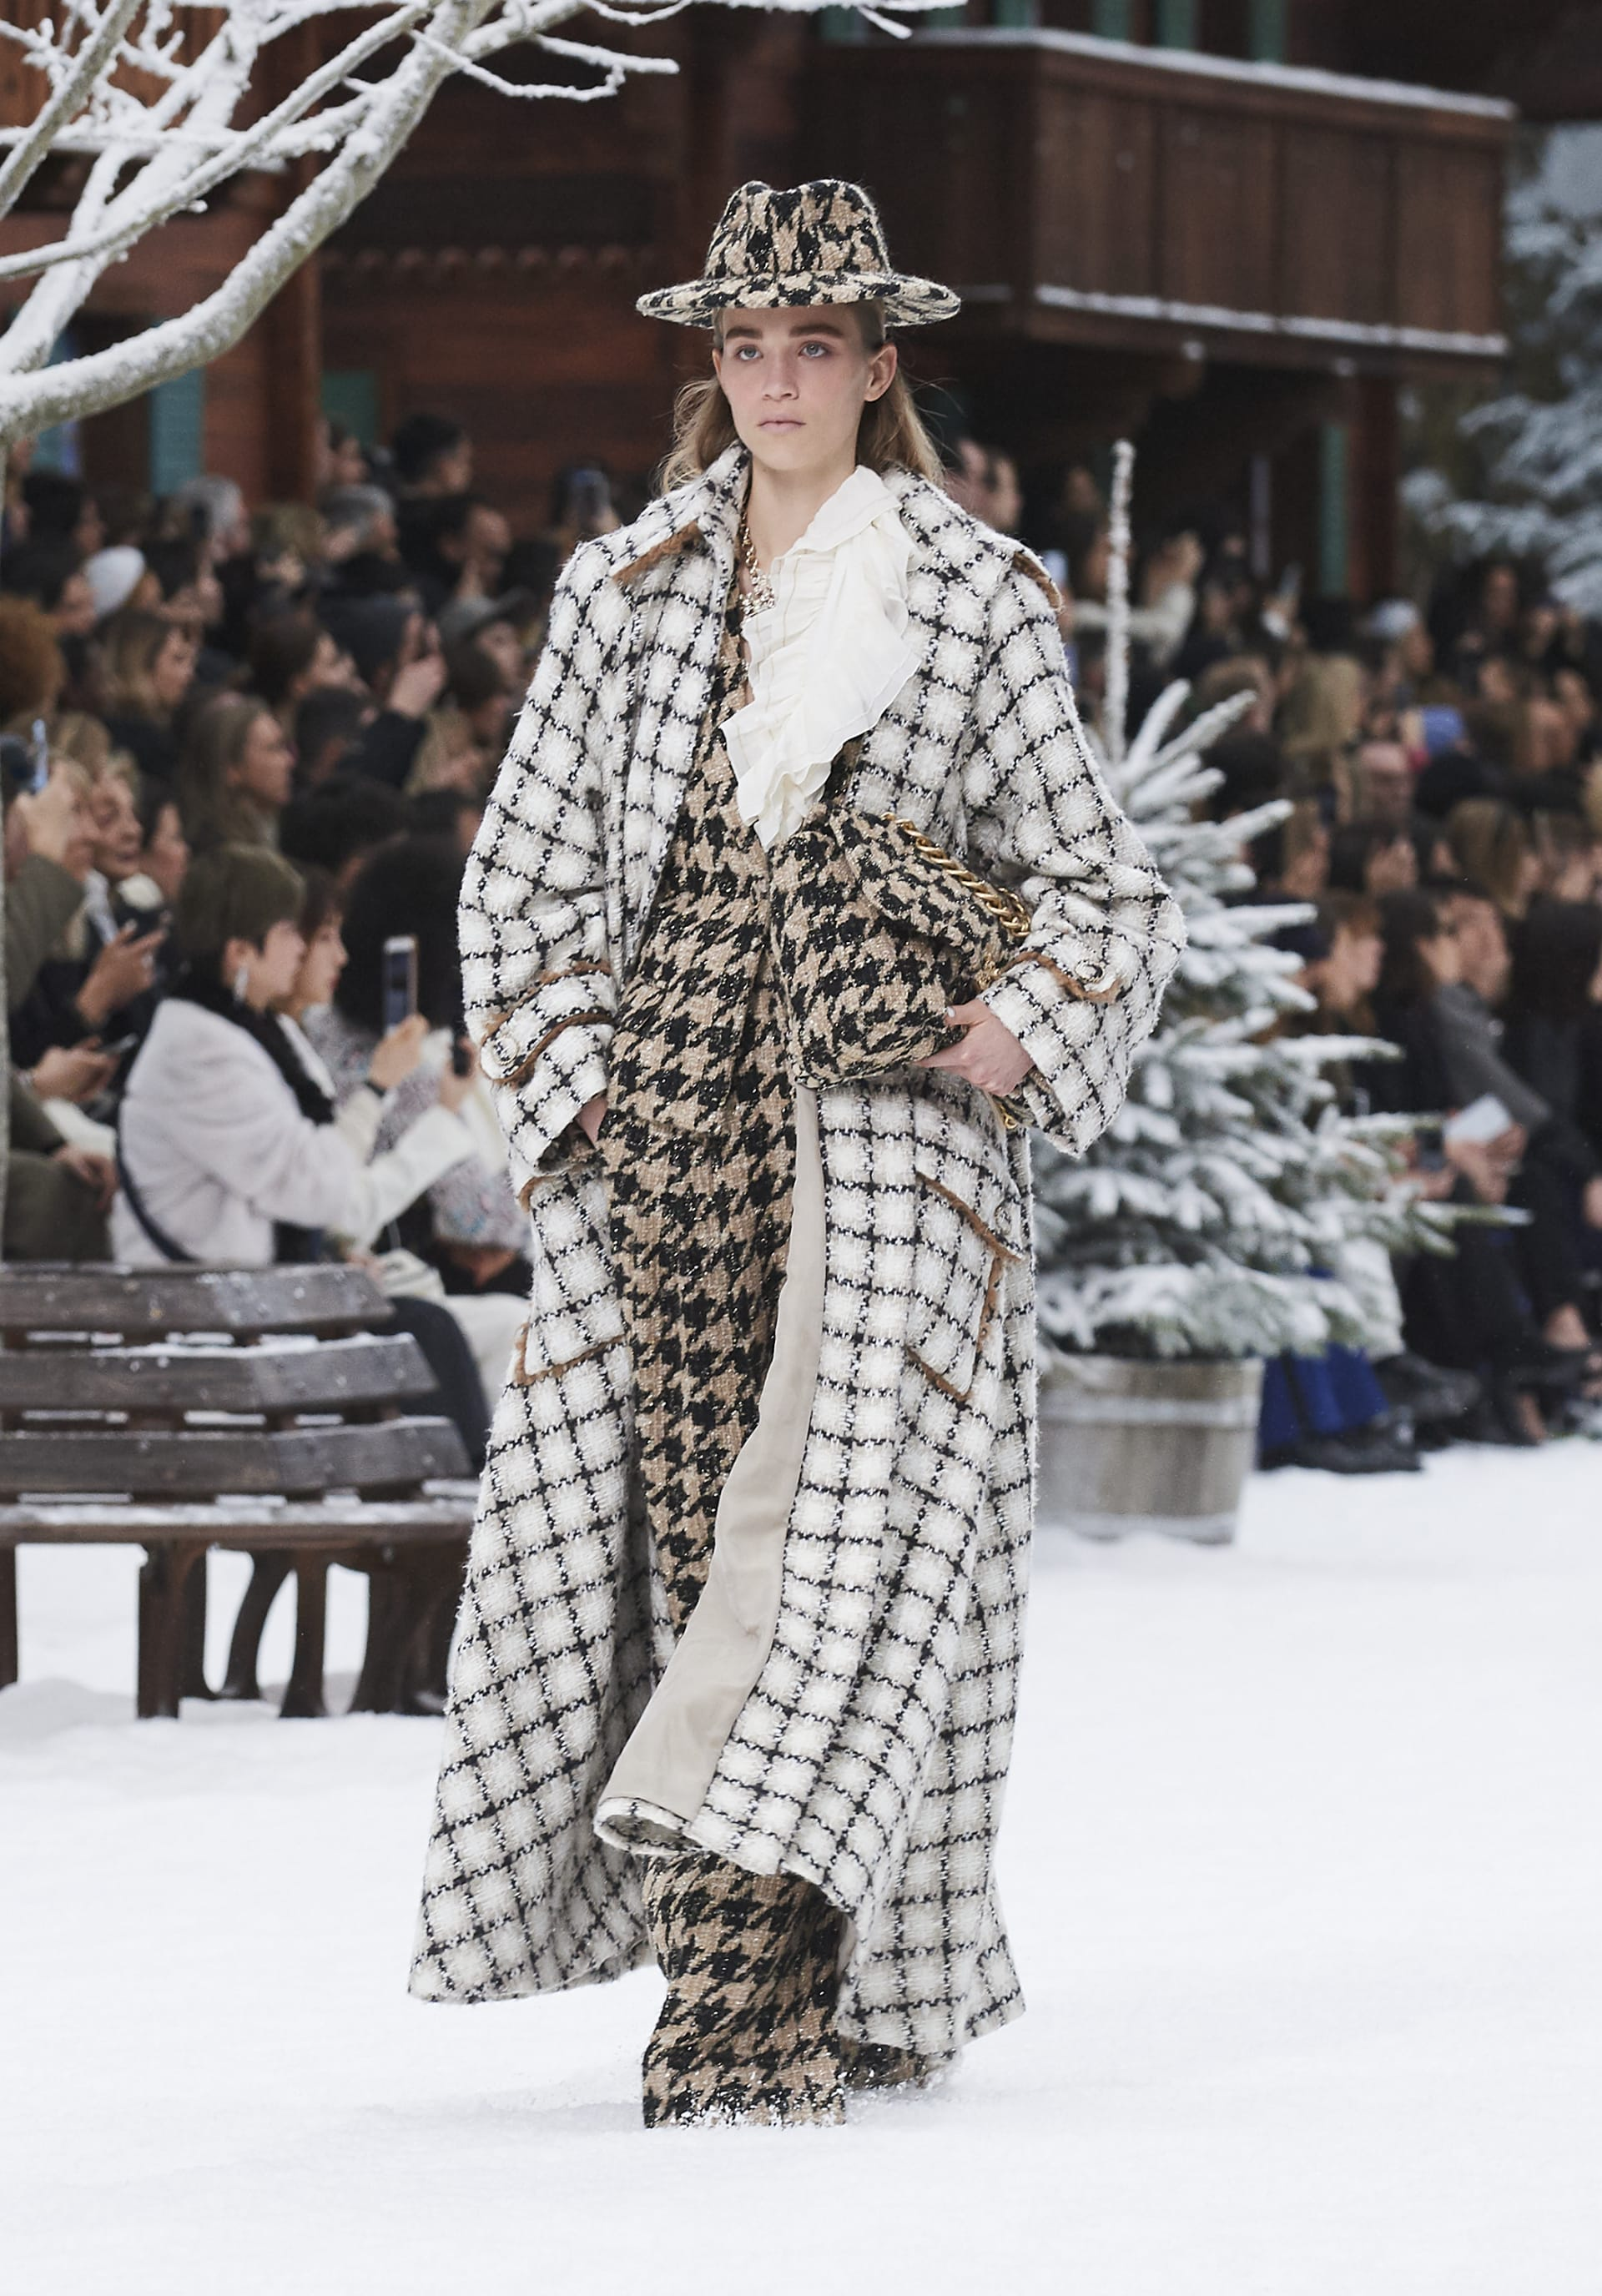 View 1 - Look 2 - Fall-Winter 2019/20